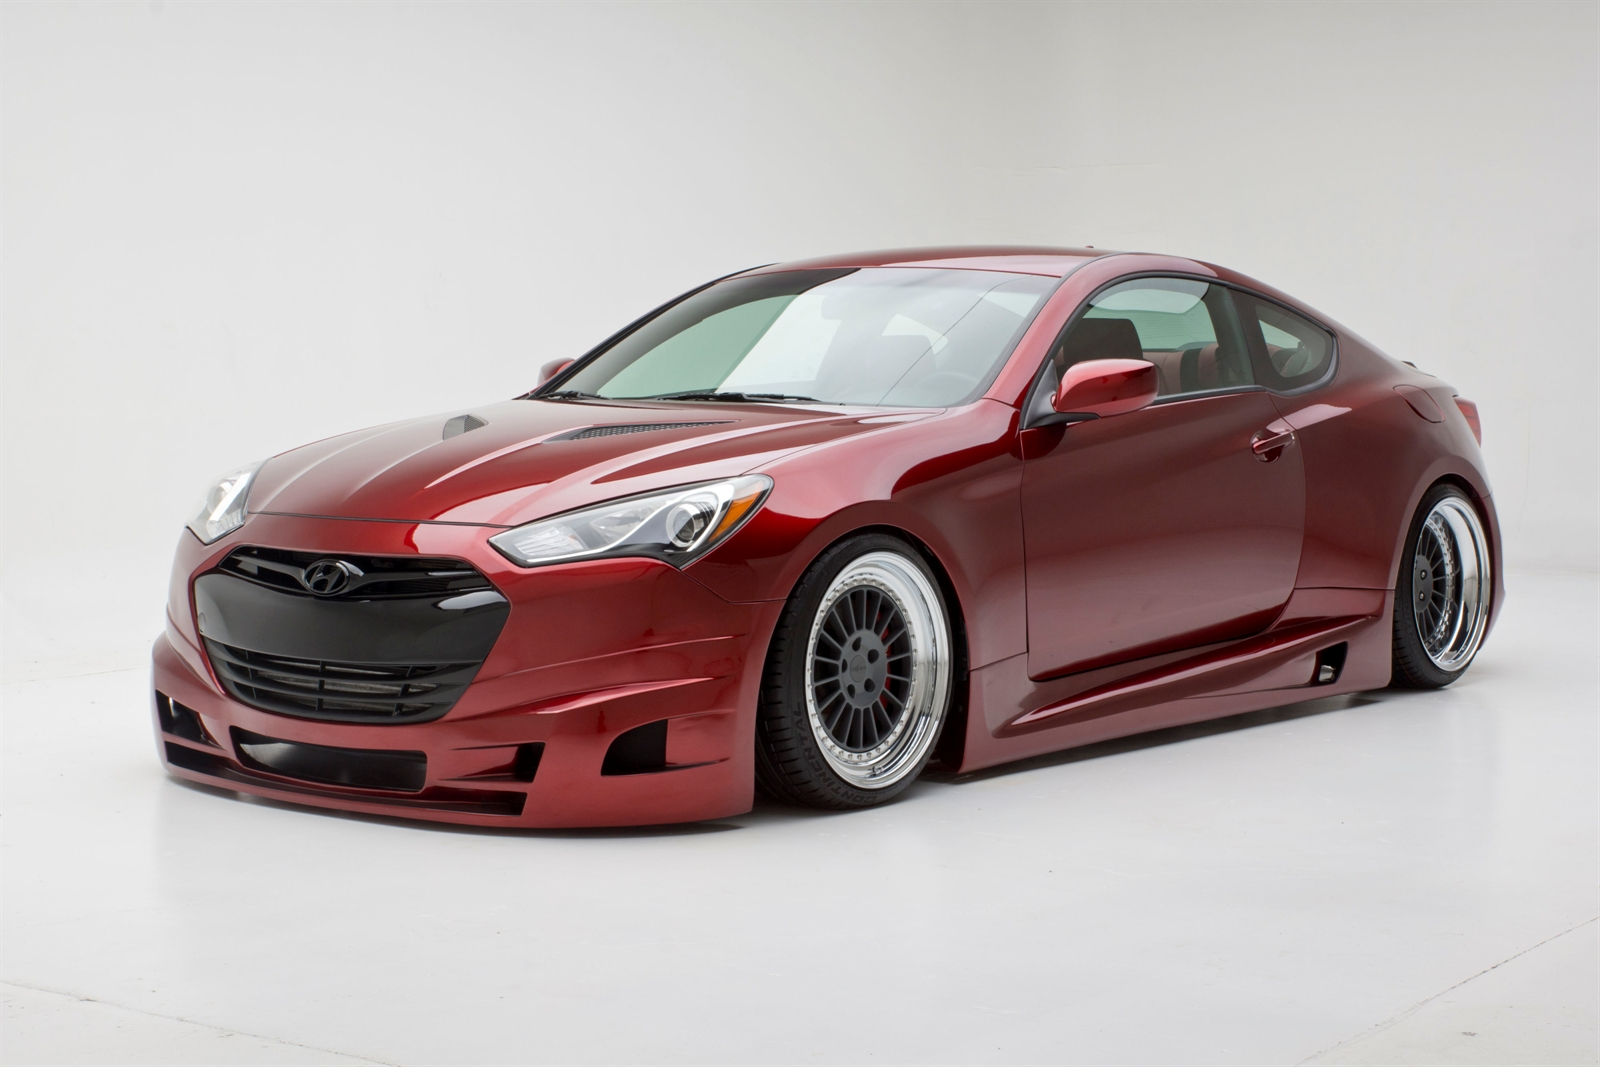 2012 sema hyundai genesis coupe by fuelculture autoevolution. Black Bedroom Furniture Sets. Home Design Ideas